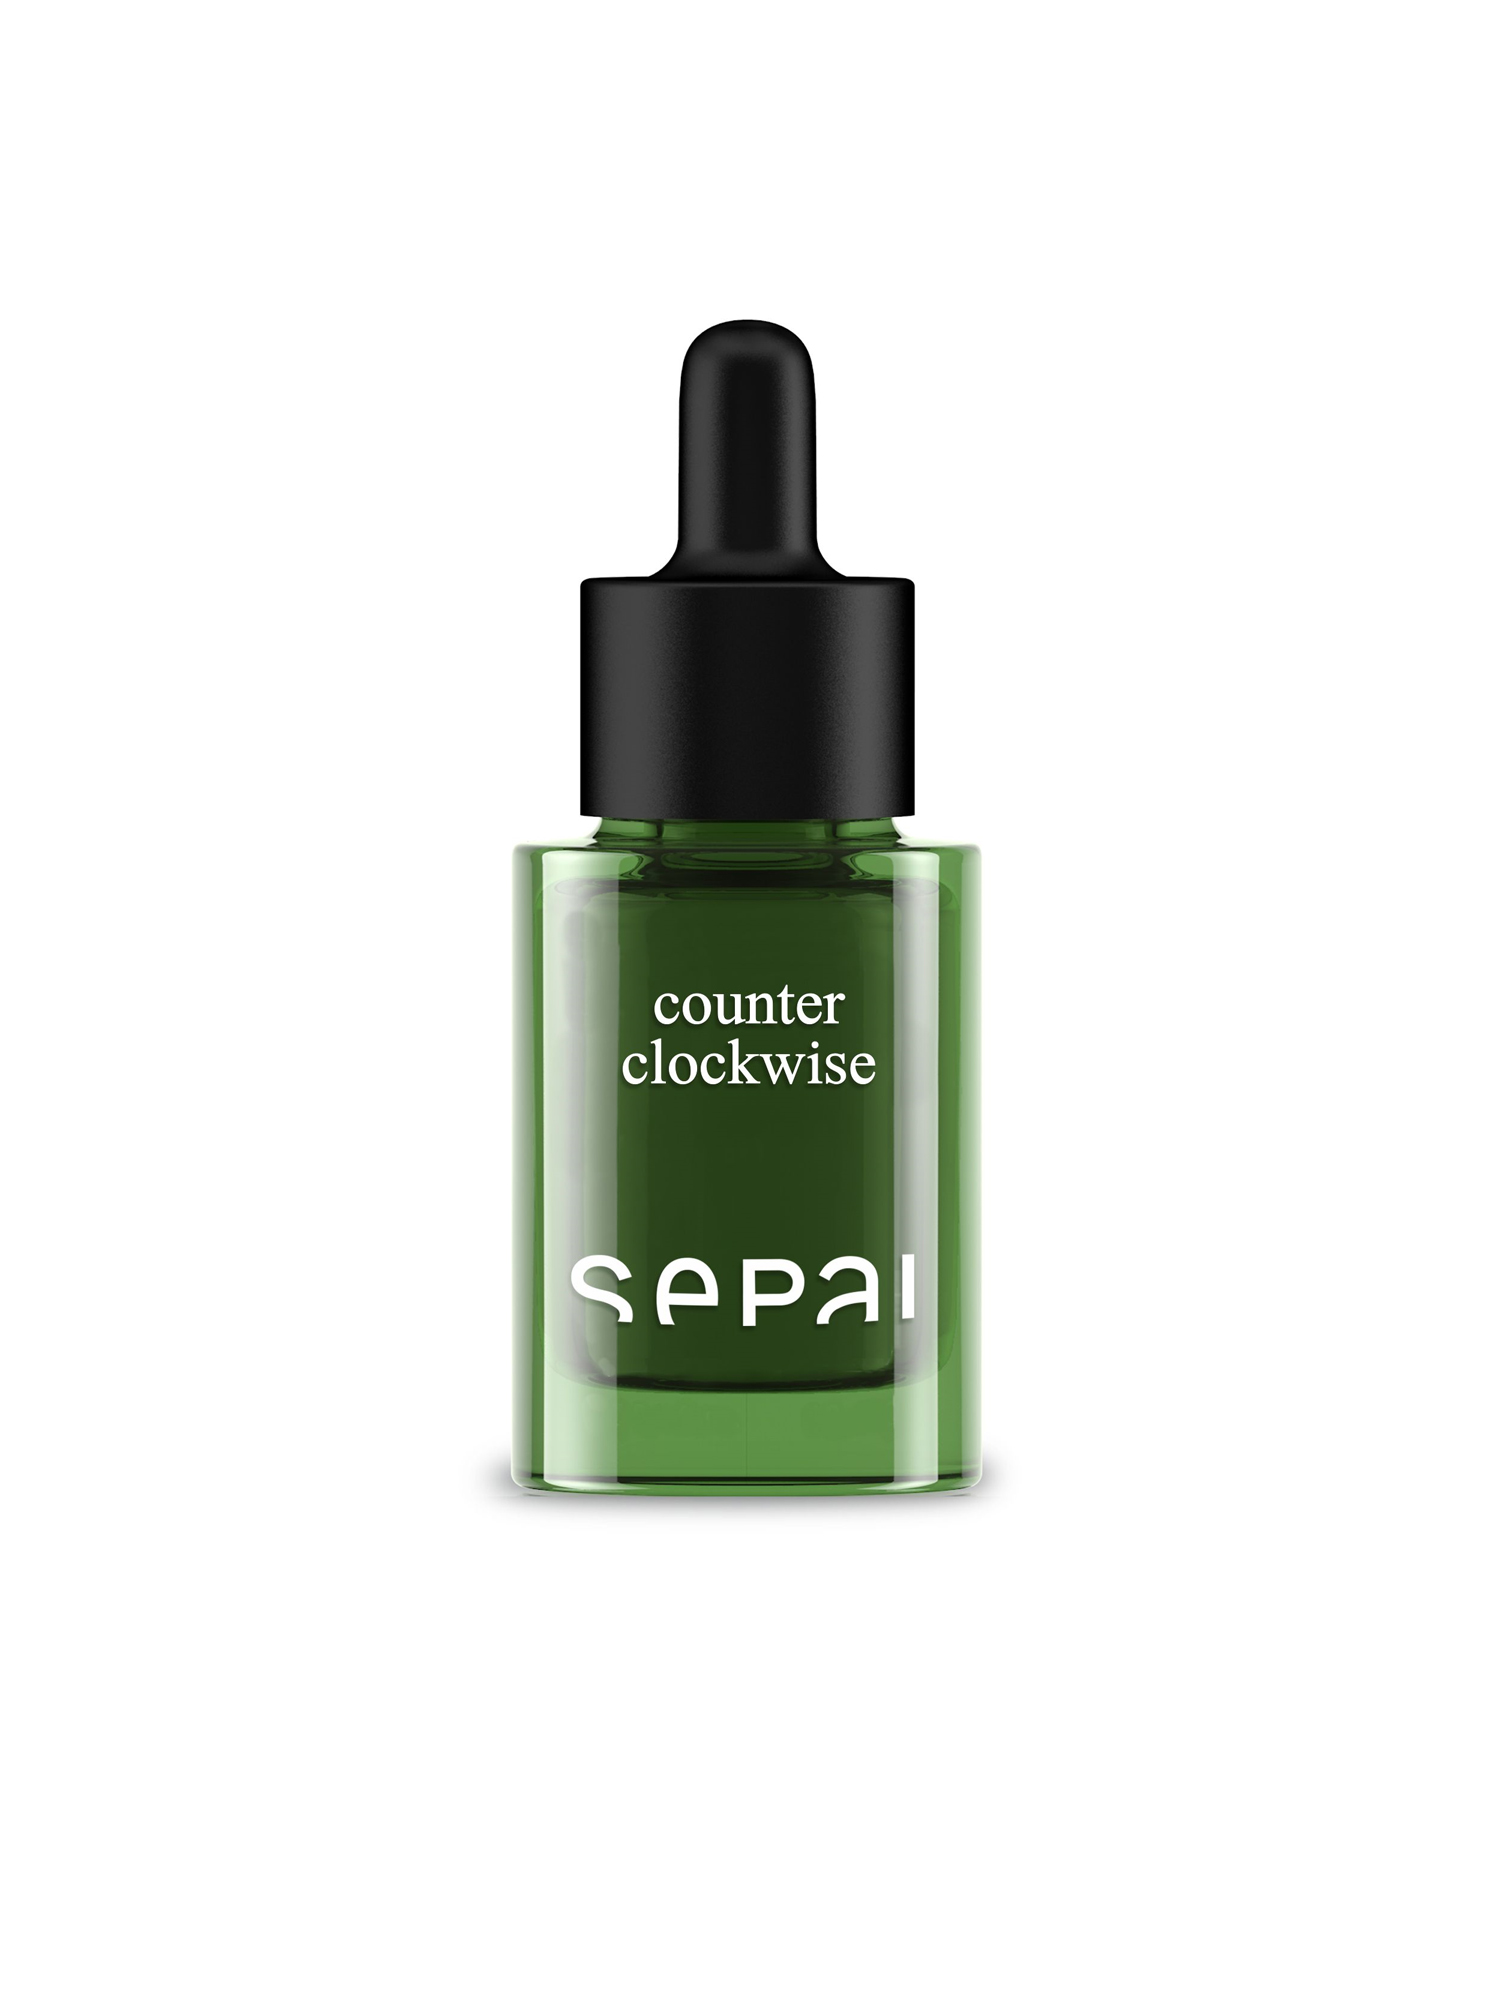 Vai a http://www.beautyaholicshop.com/product/Counter-Clockwise